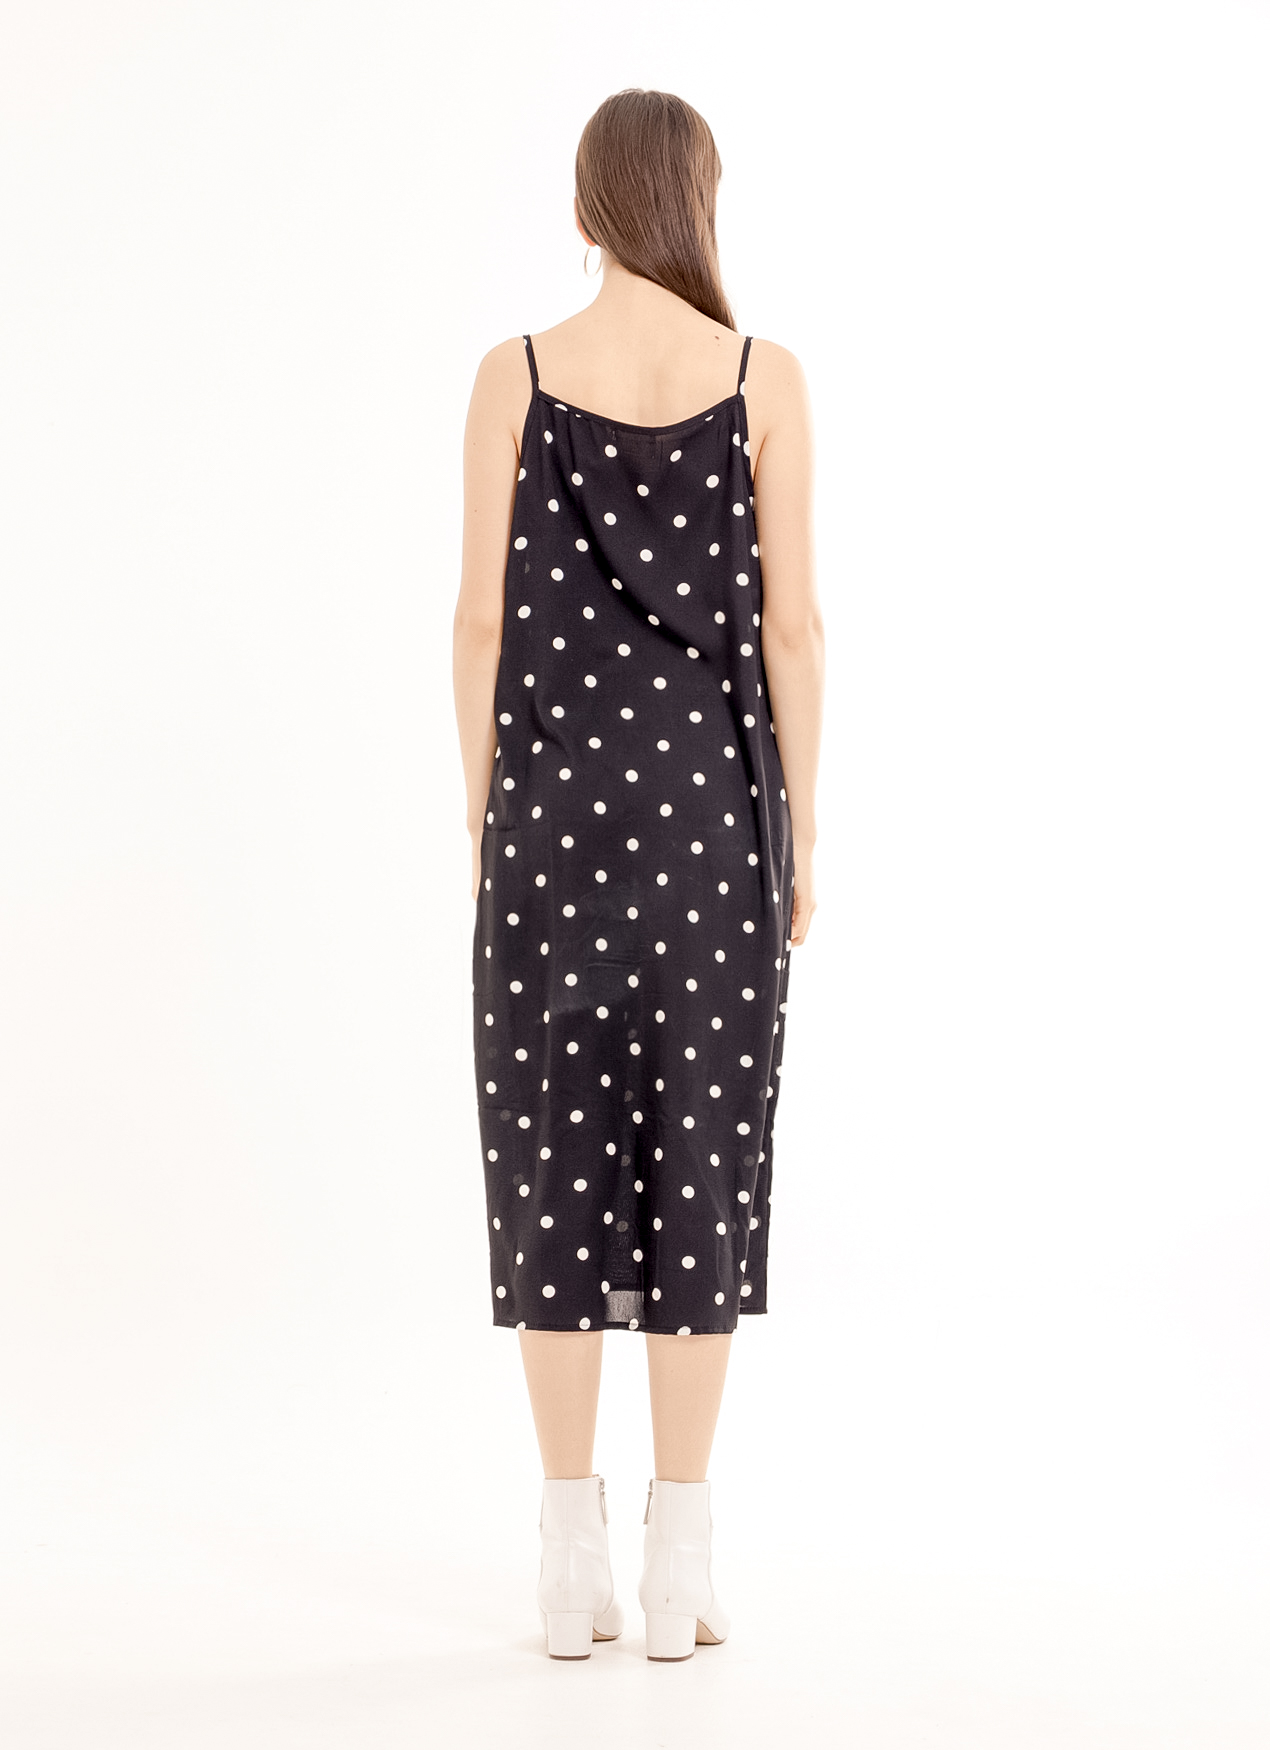 BOWN Tessa Dress - Dot